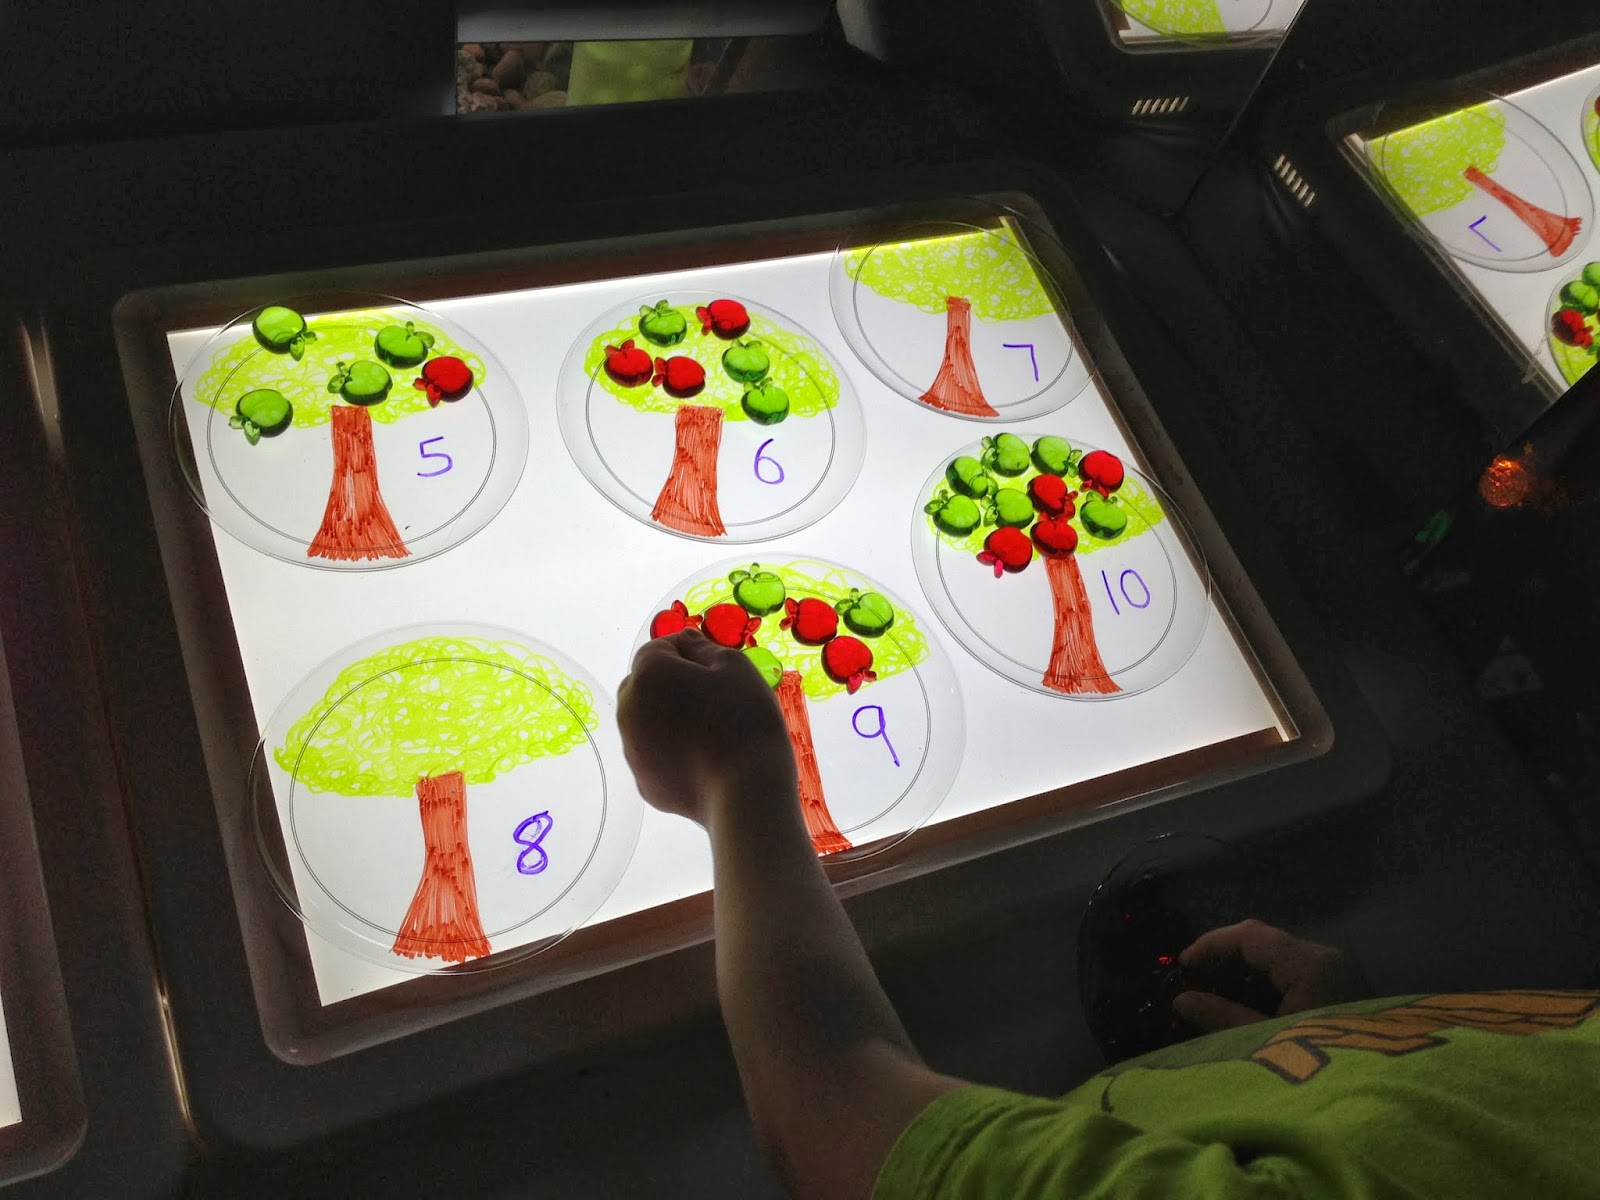 Tablette Lumineuse Ikea Epic Childhood Light Table Exploration